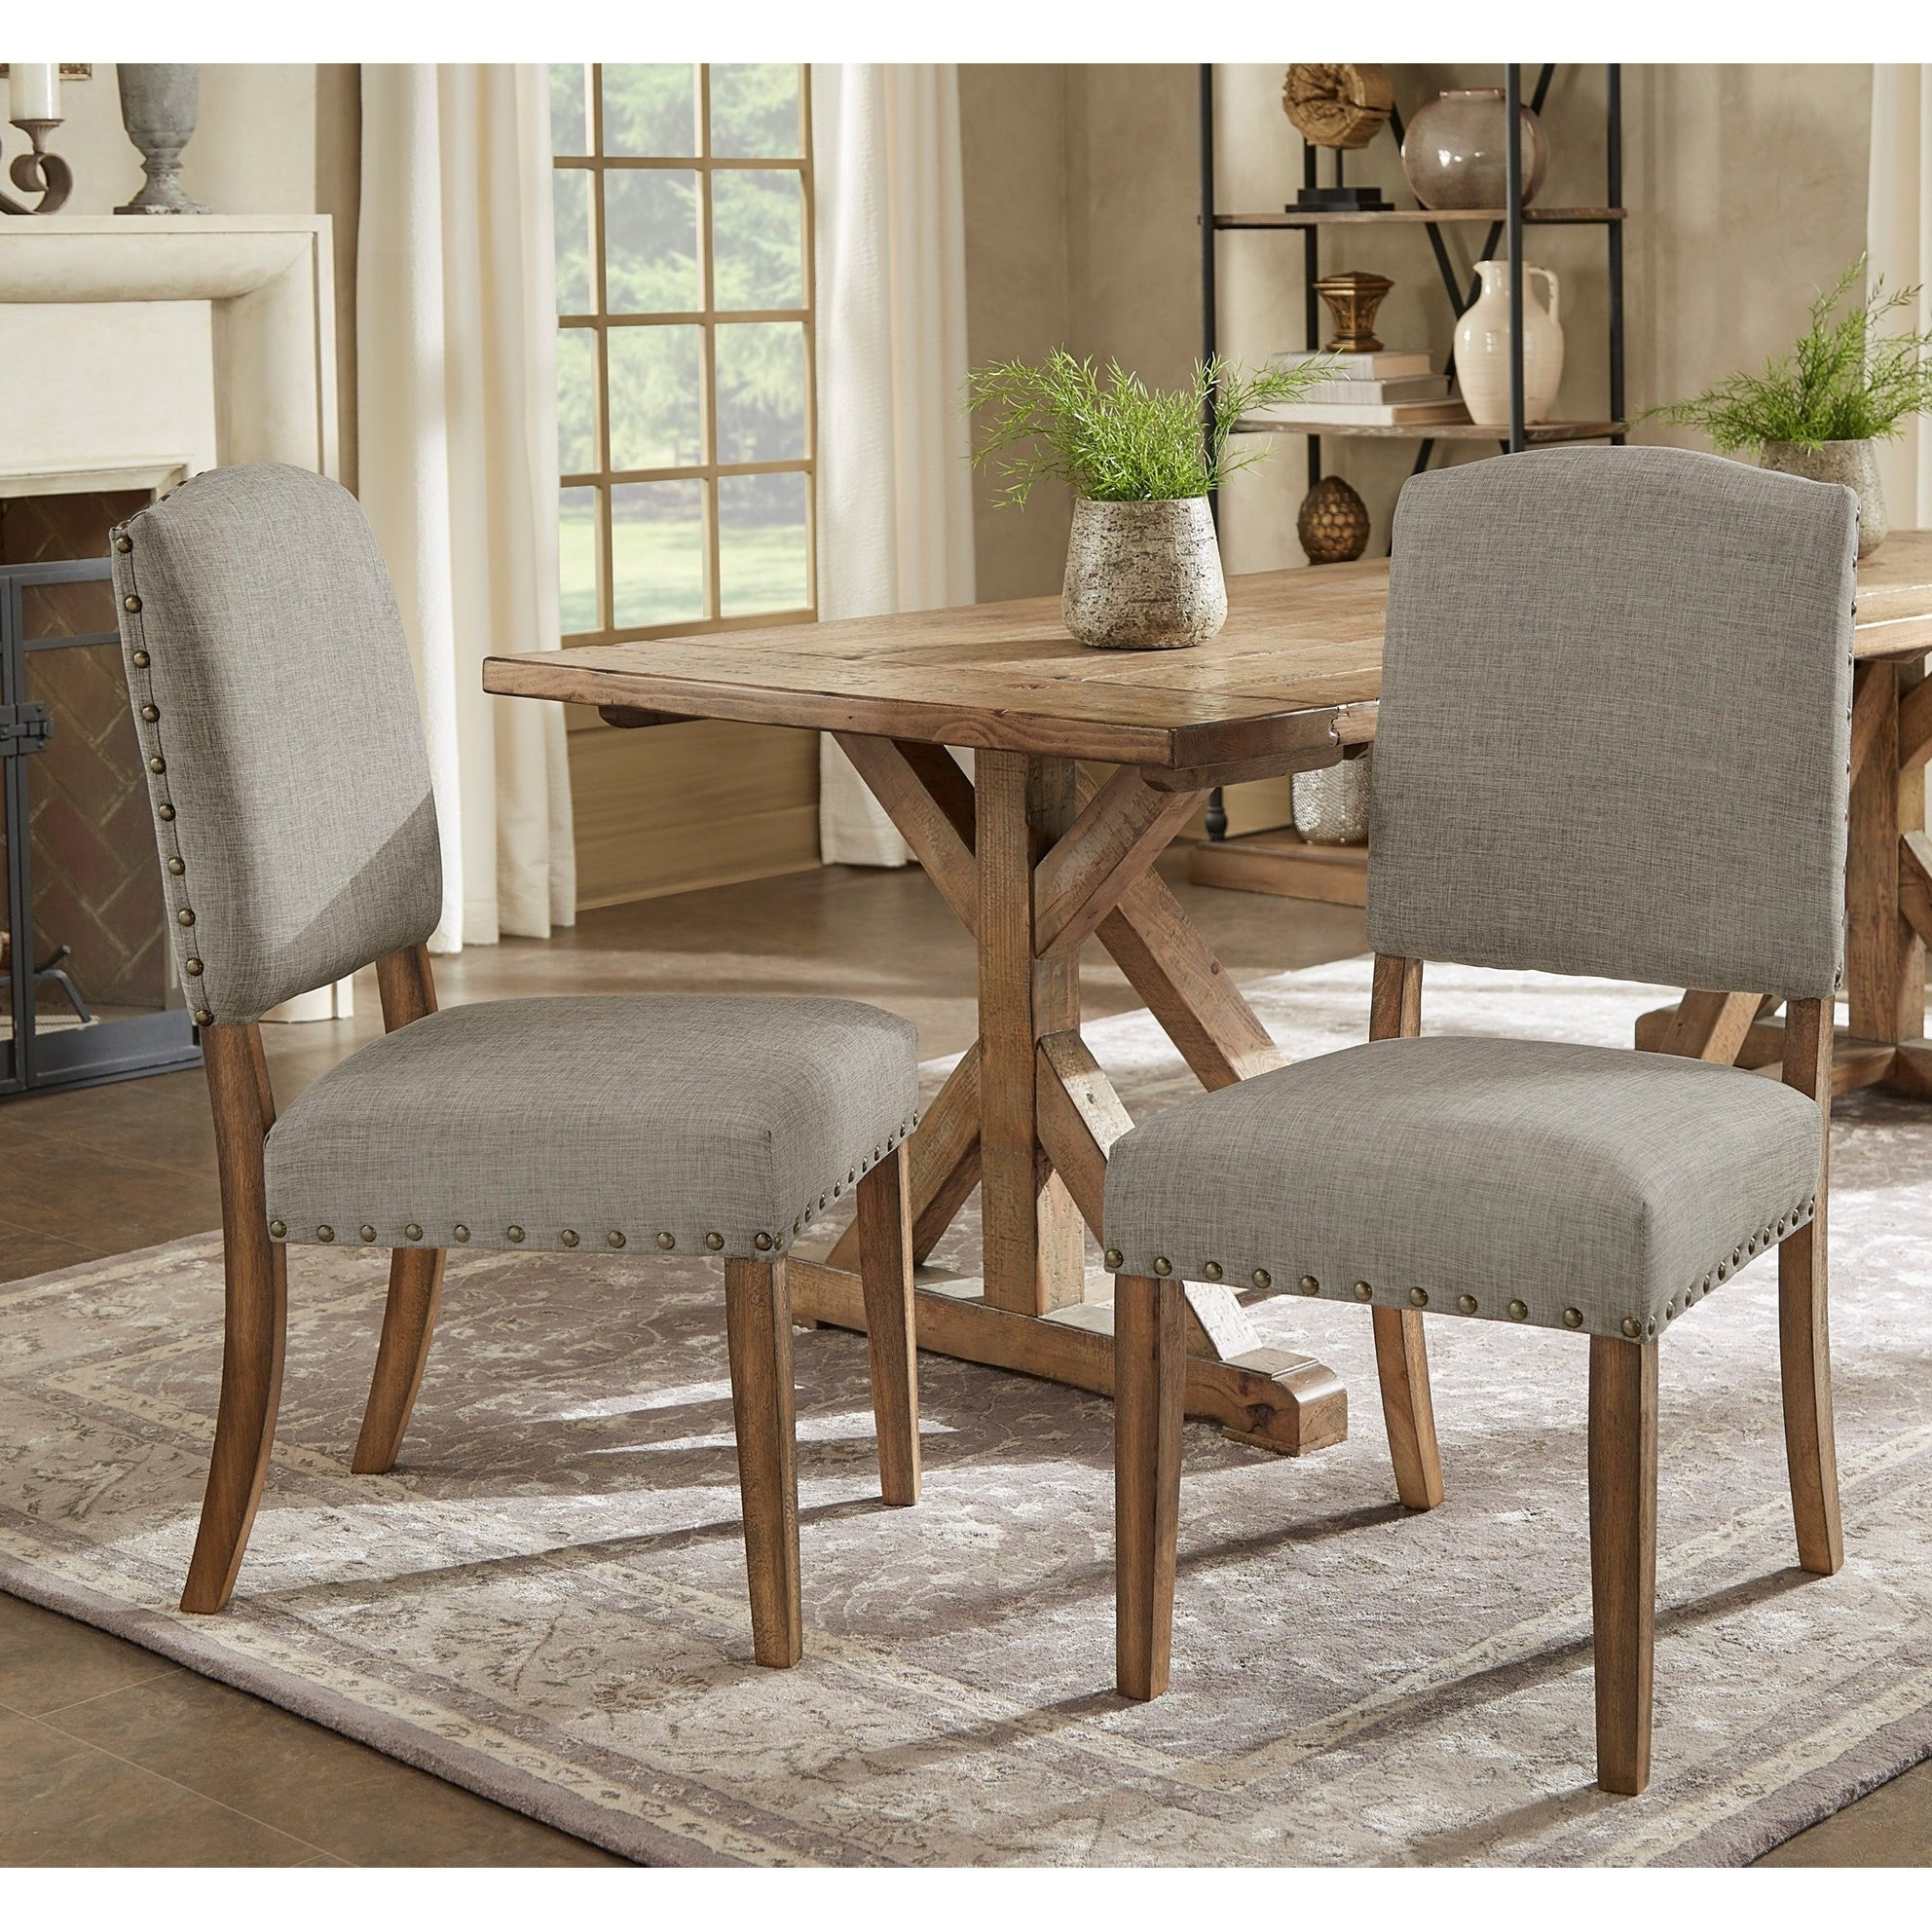 Shop Benchwright Premium Nailhead Upholstered Dining Chairs (Set Of Inside Most Up To Date Candice Ii 5 Piece Round Dining Sets With Slat Back Side Chairs (Image 16 of 20)